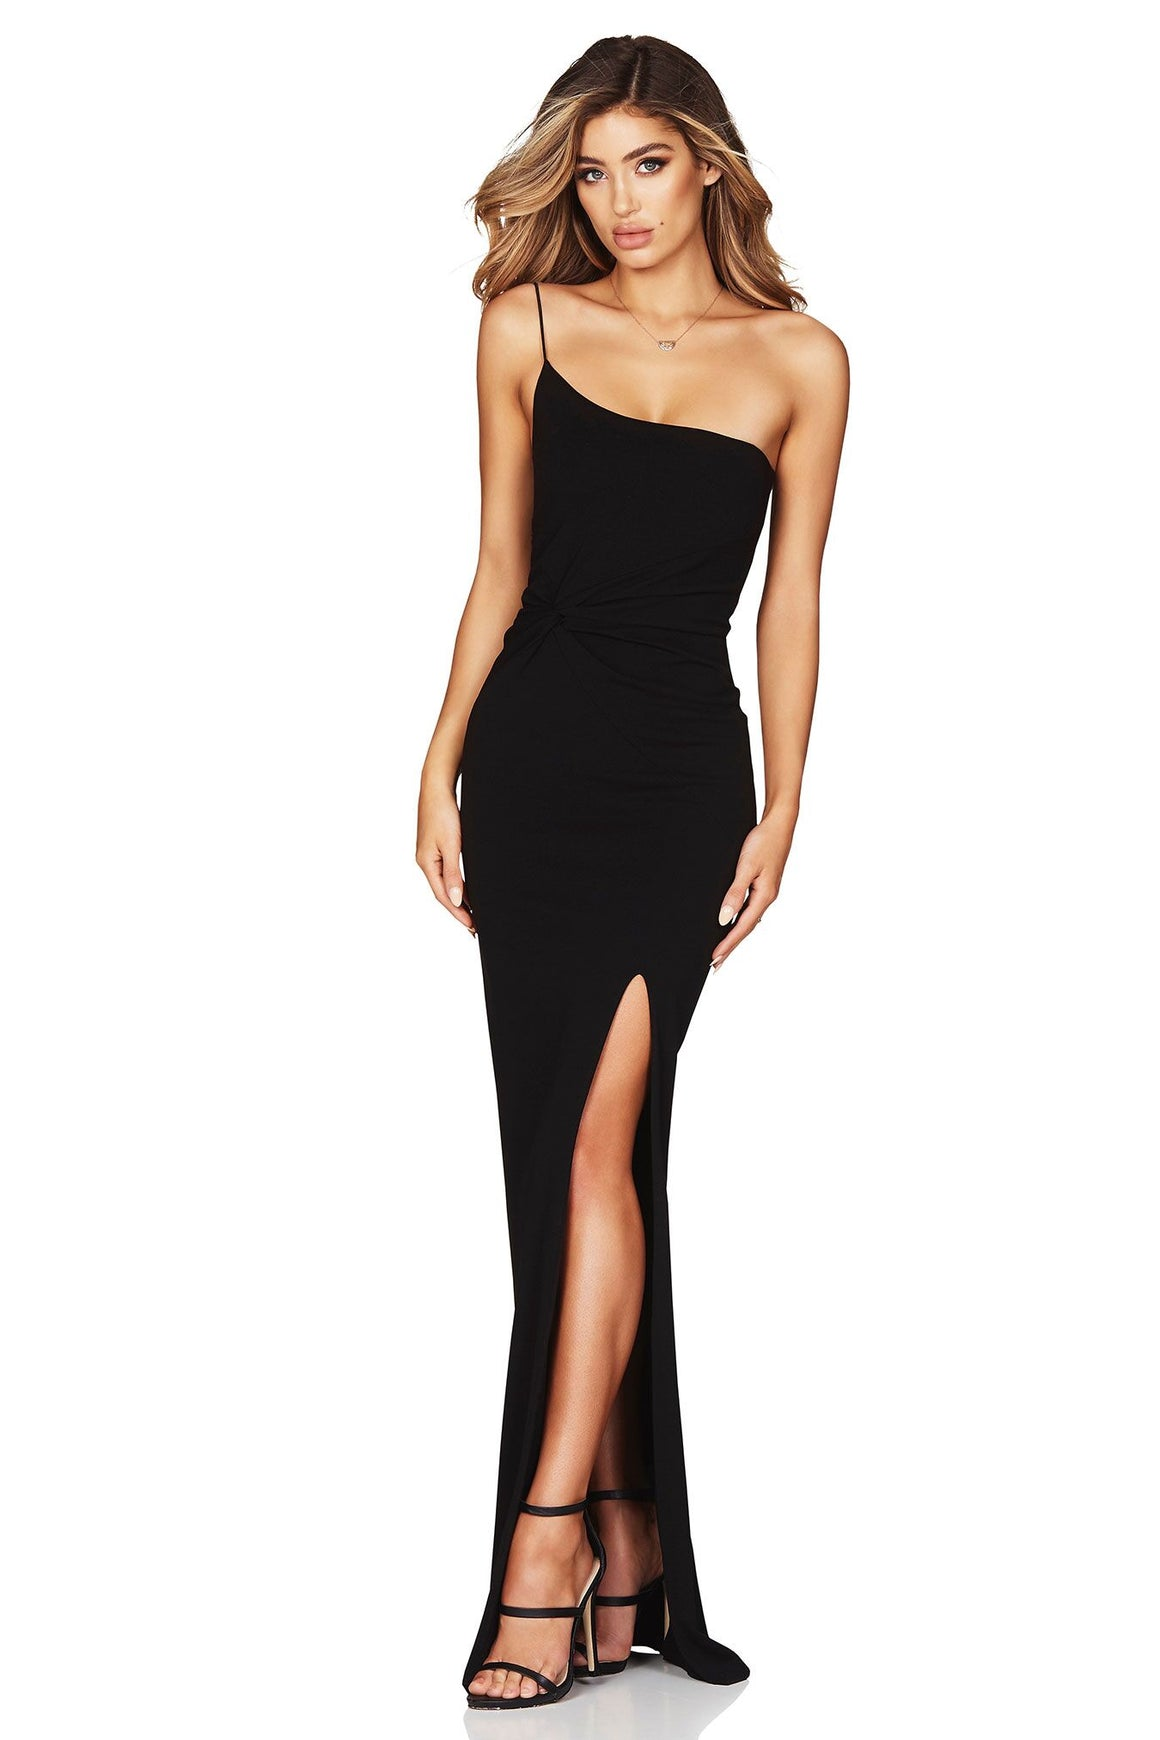 Lust One Shoulder Gown - Black